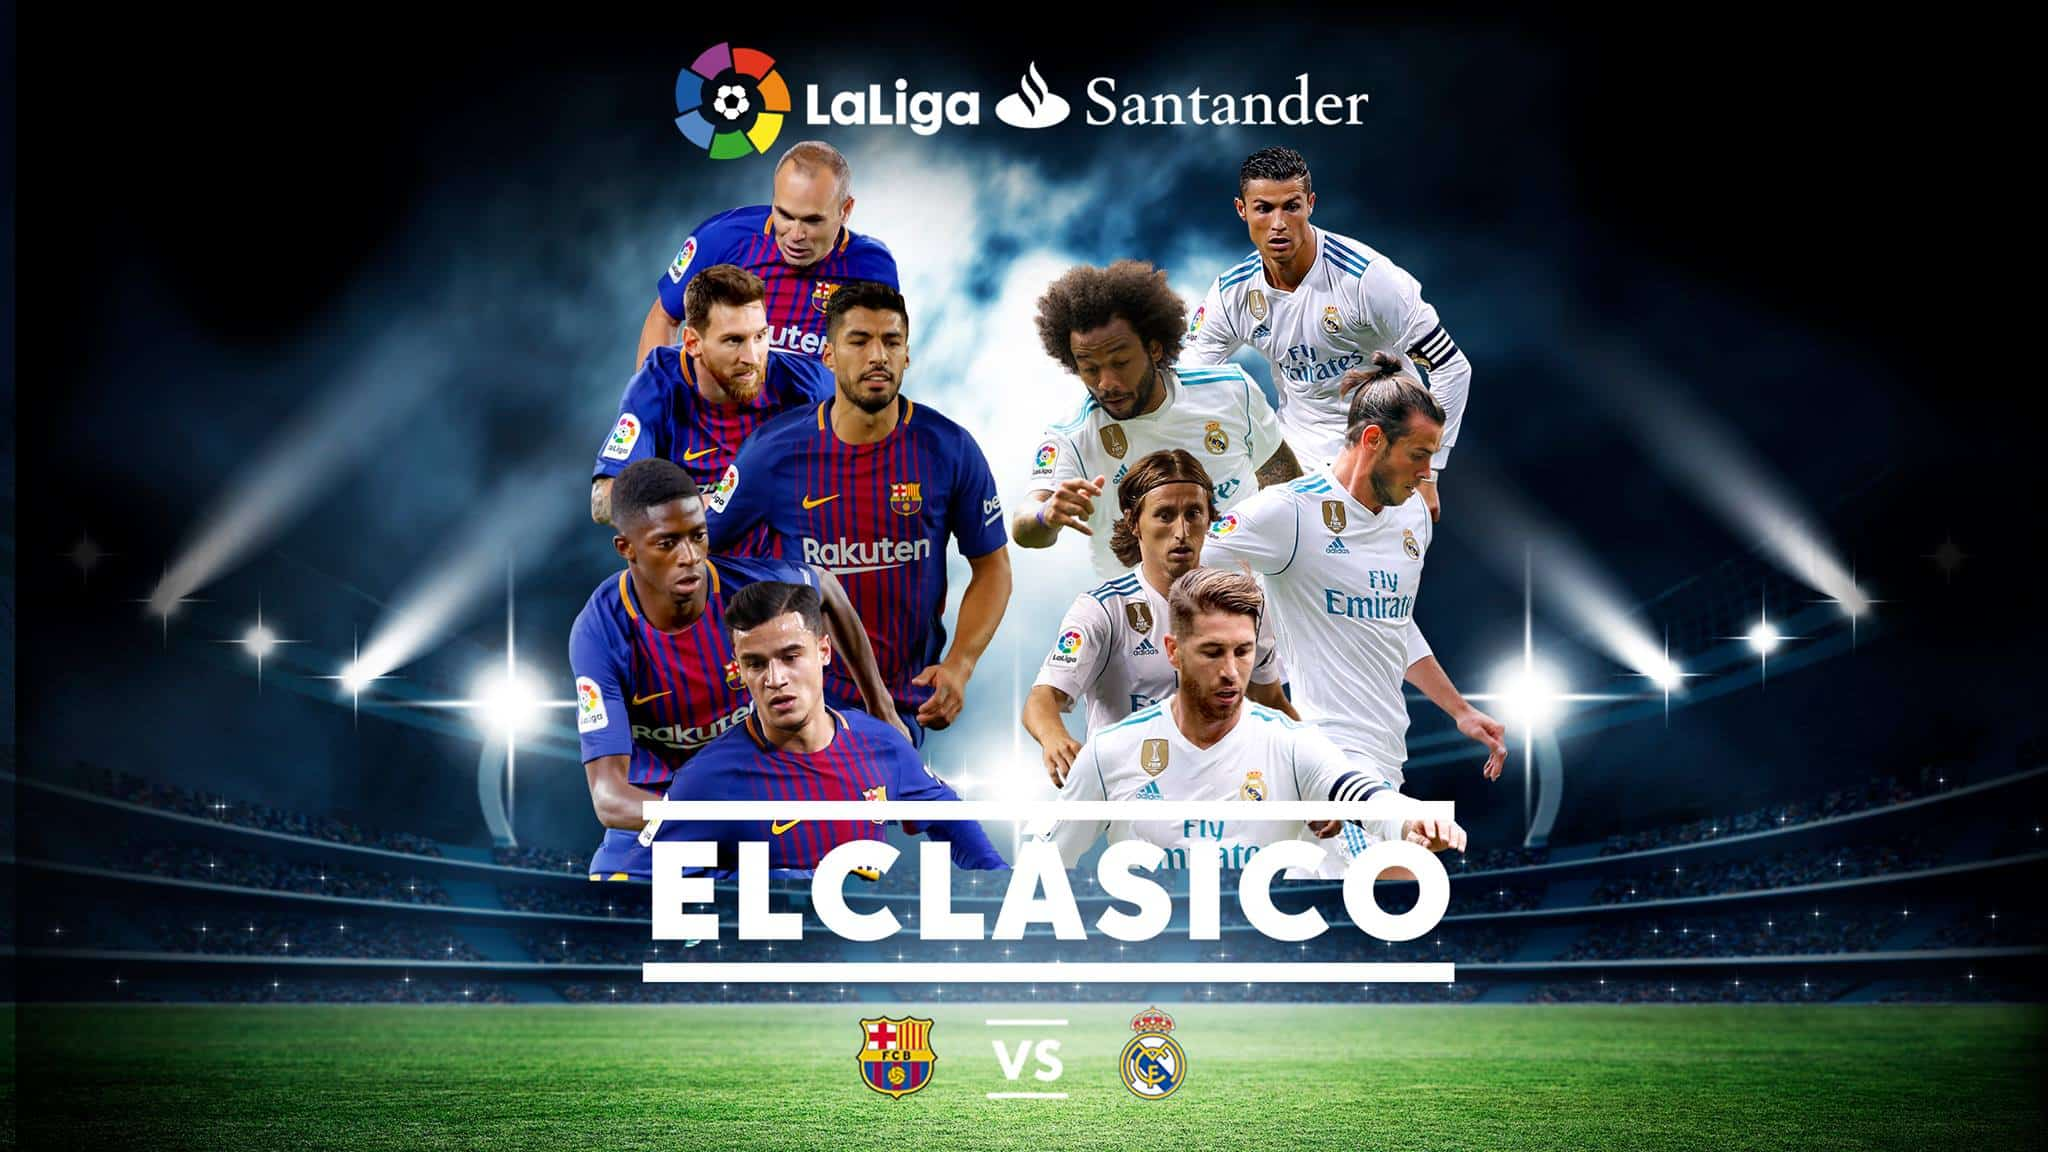 ElClasico | FC Barcelona vs Real Madrid